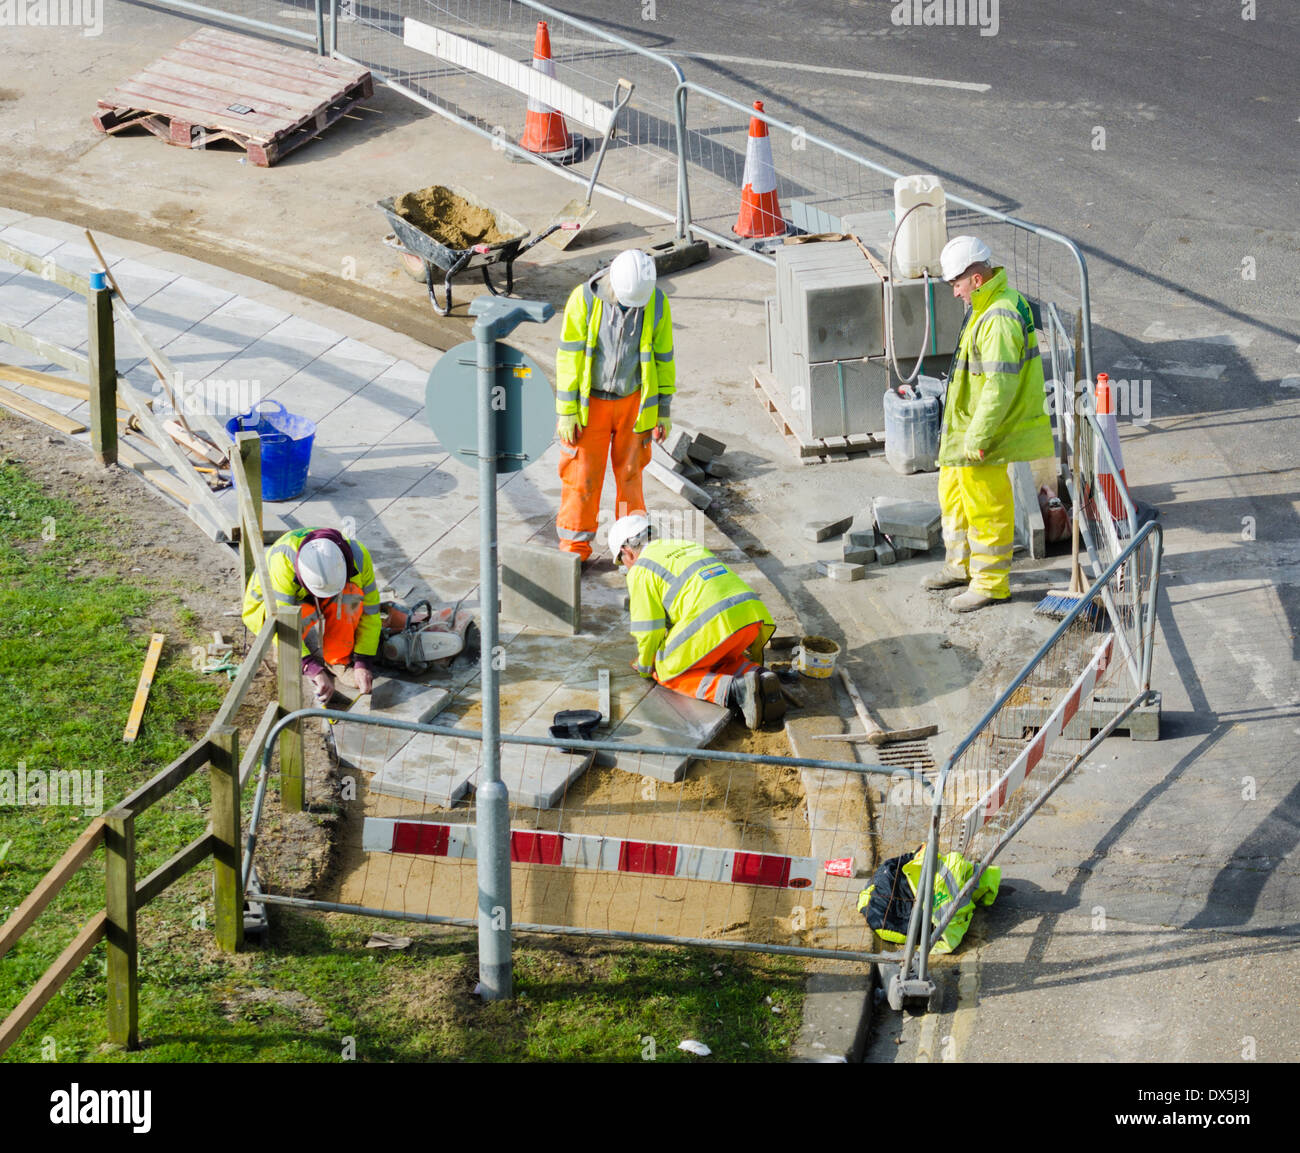 Workmen working by the road laying paving slabs in high visibility jackets. - Stock Image